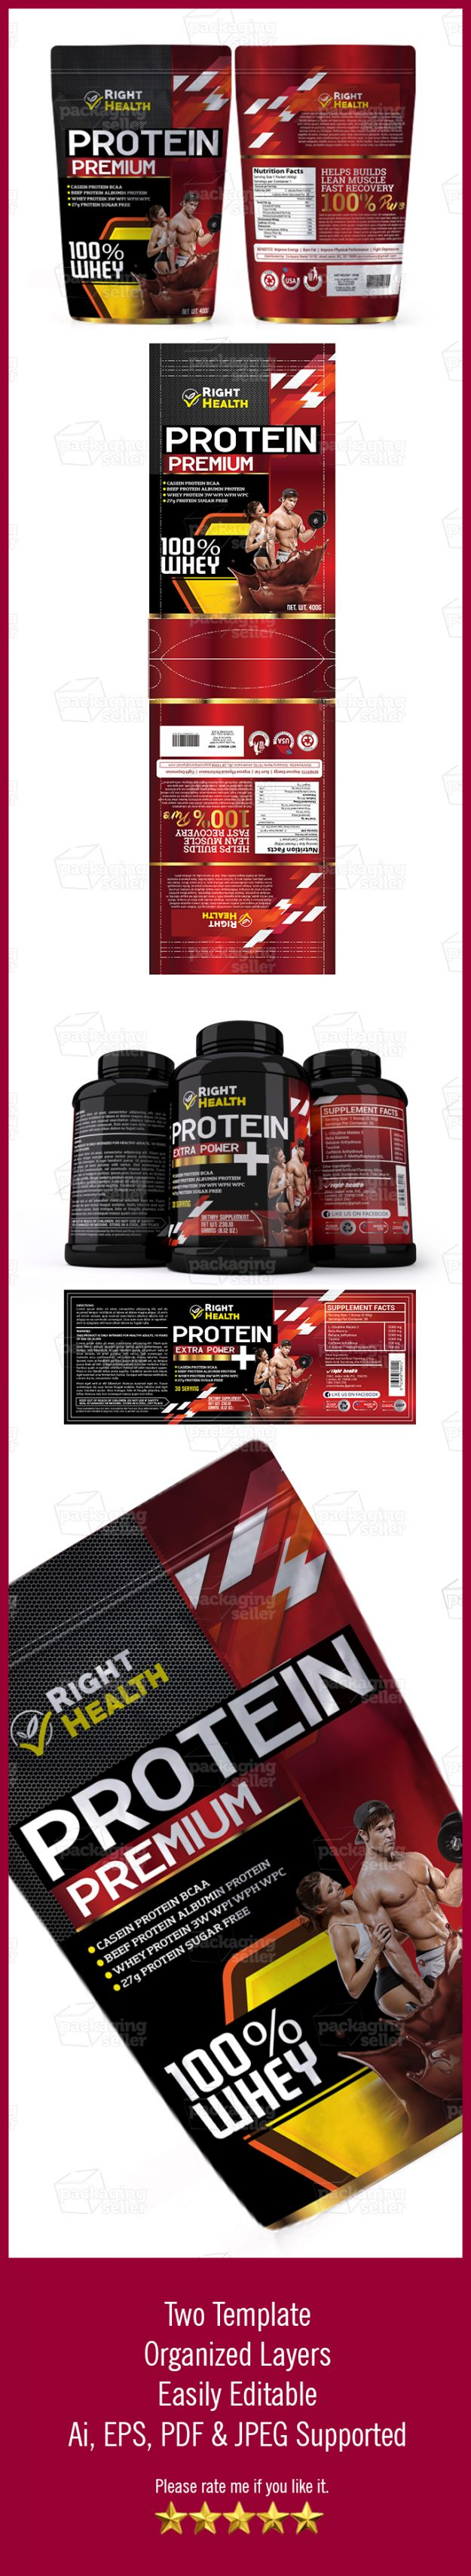 Supplement-Label-Template